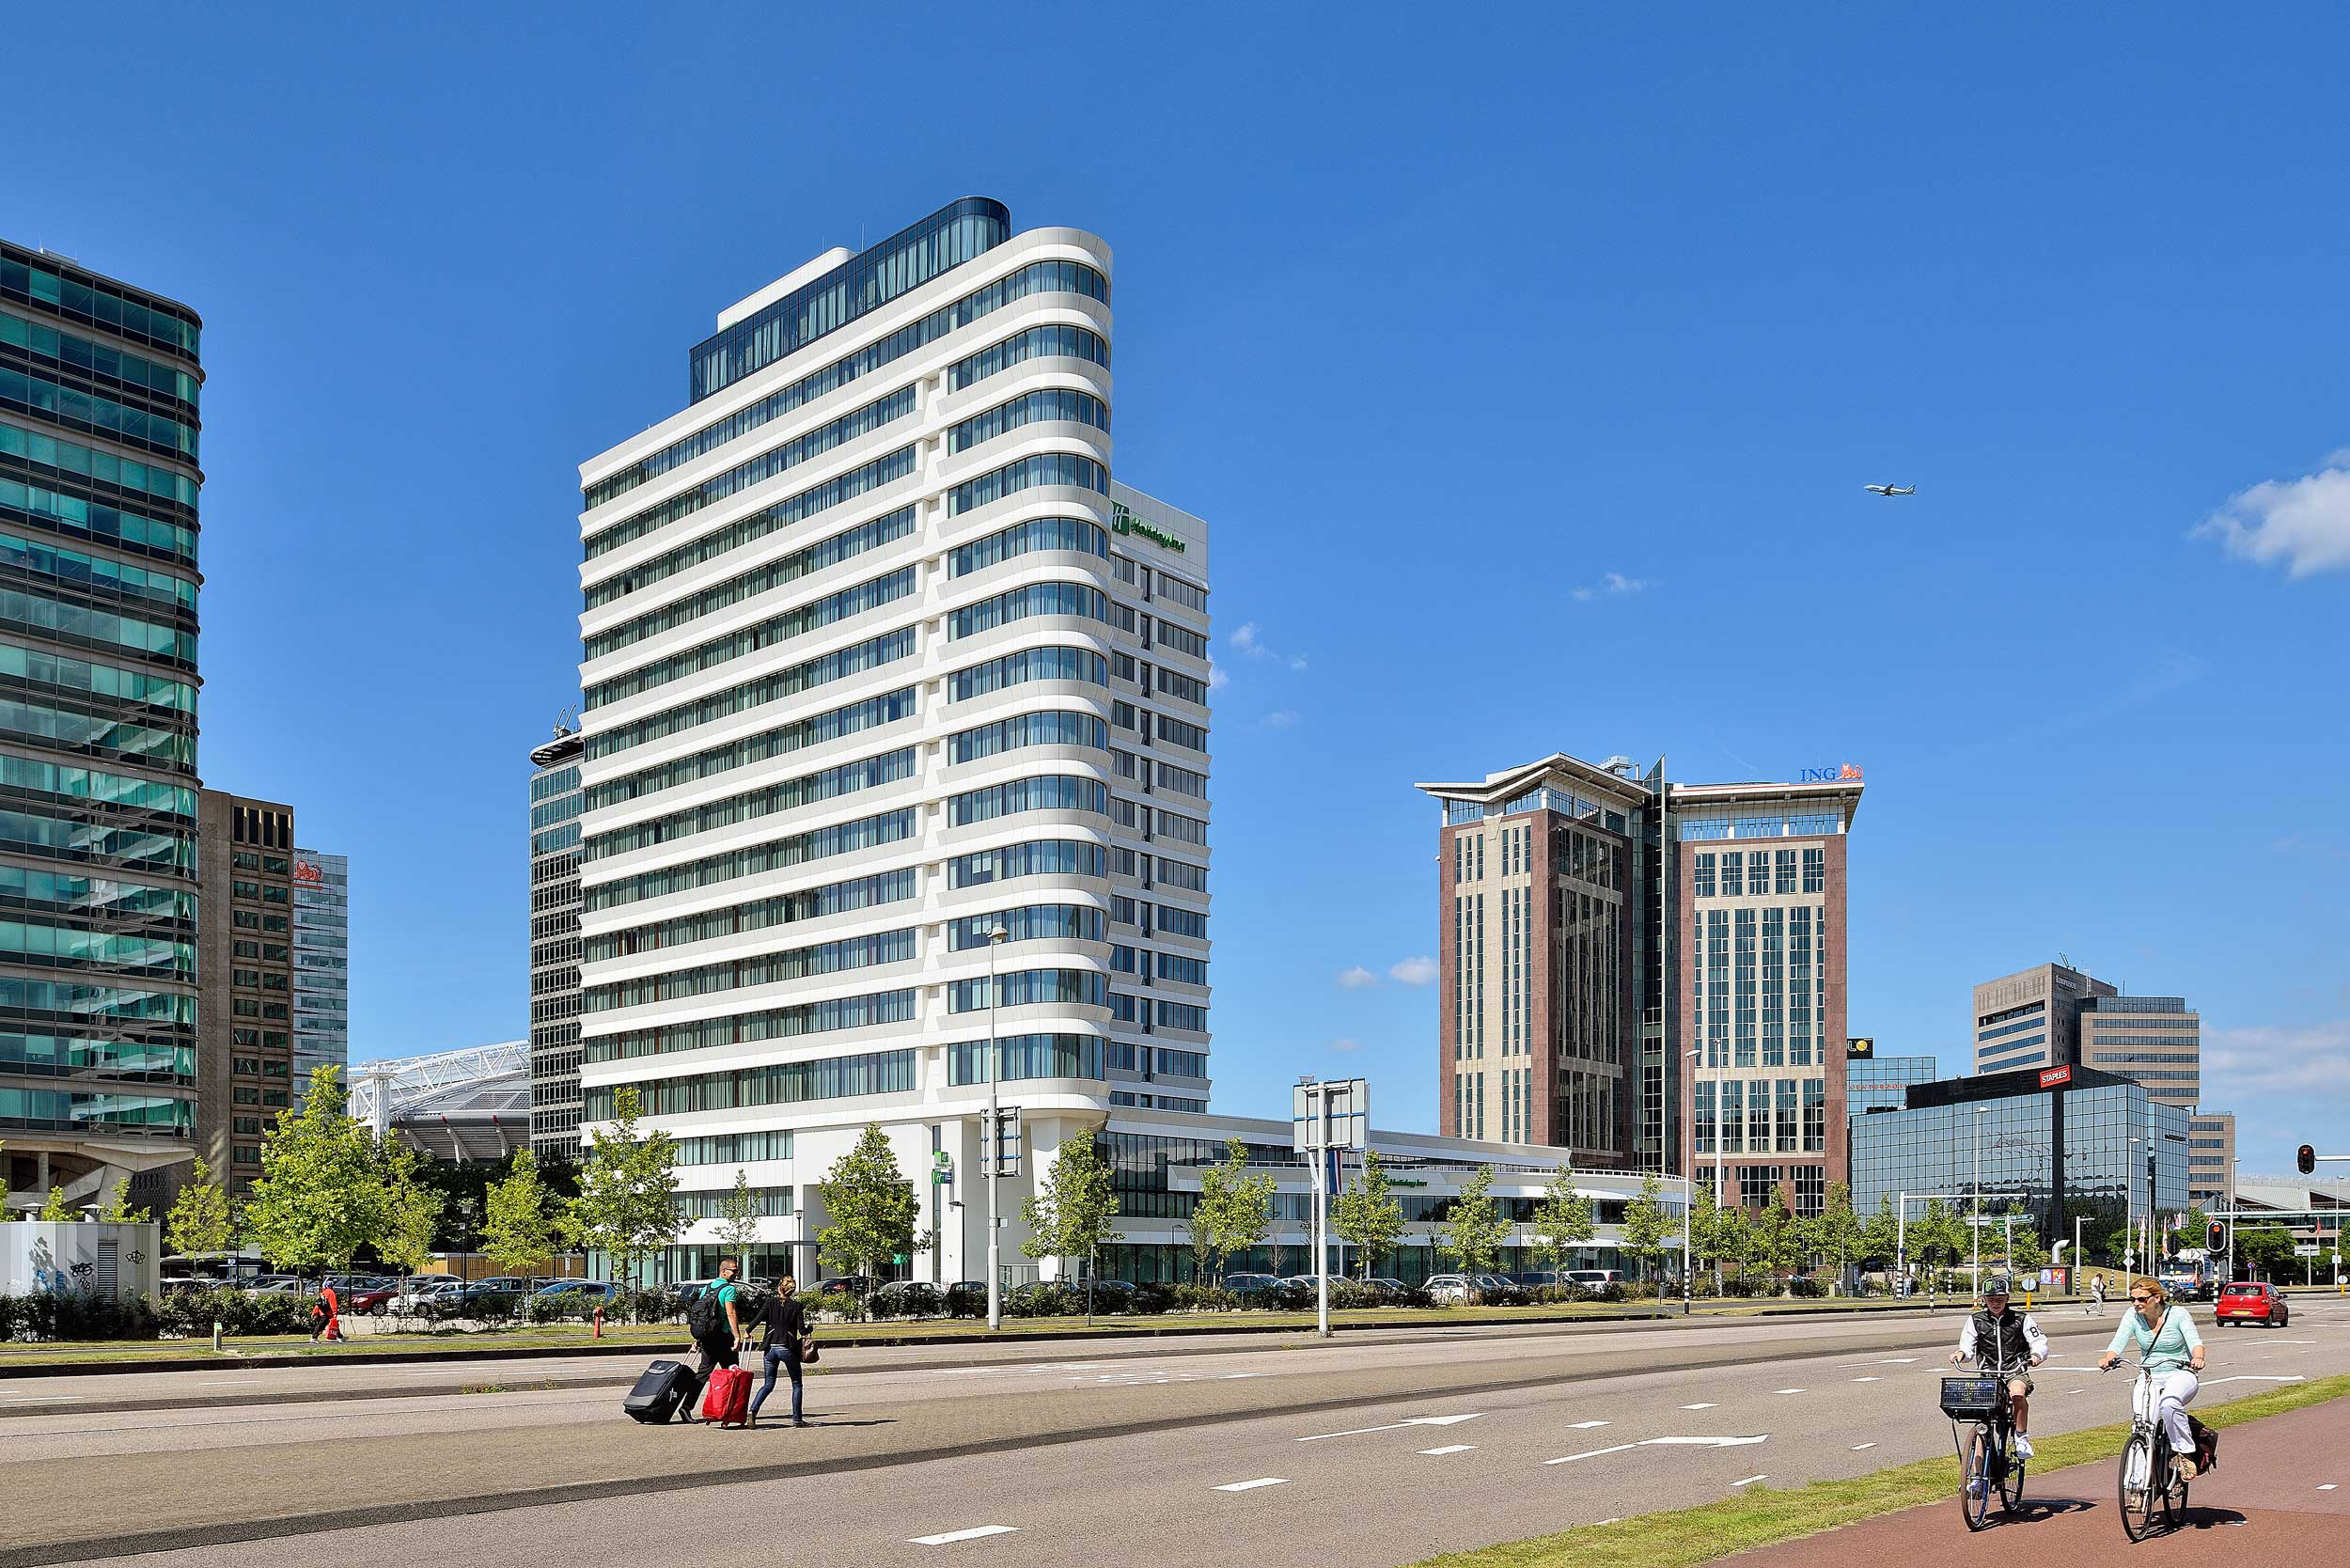 Holiday Inn Hotel, Amsterdam - architectuur fotograaf Chiel de Nooyer